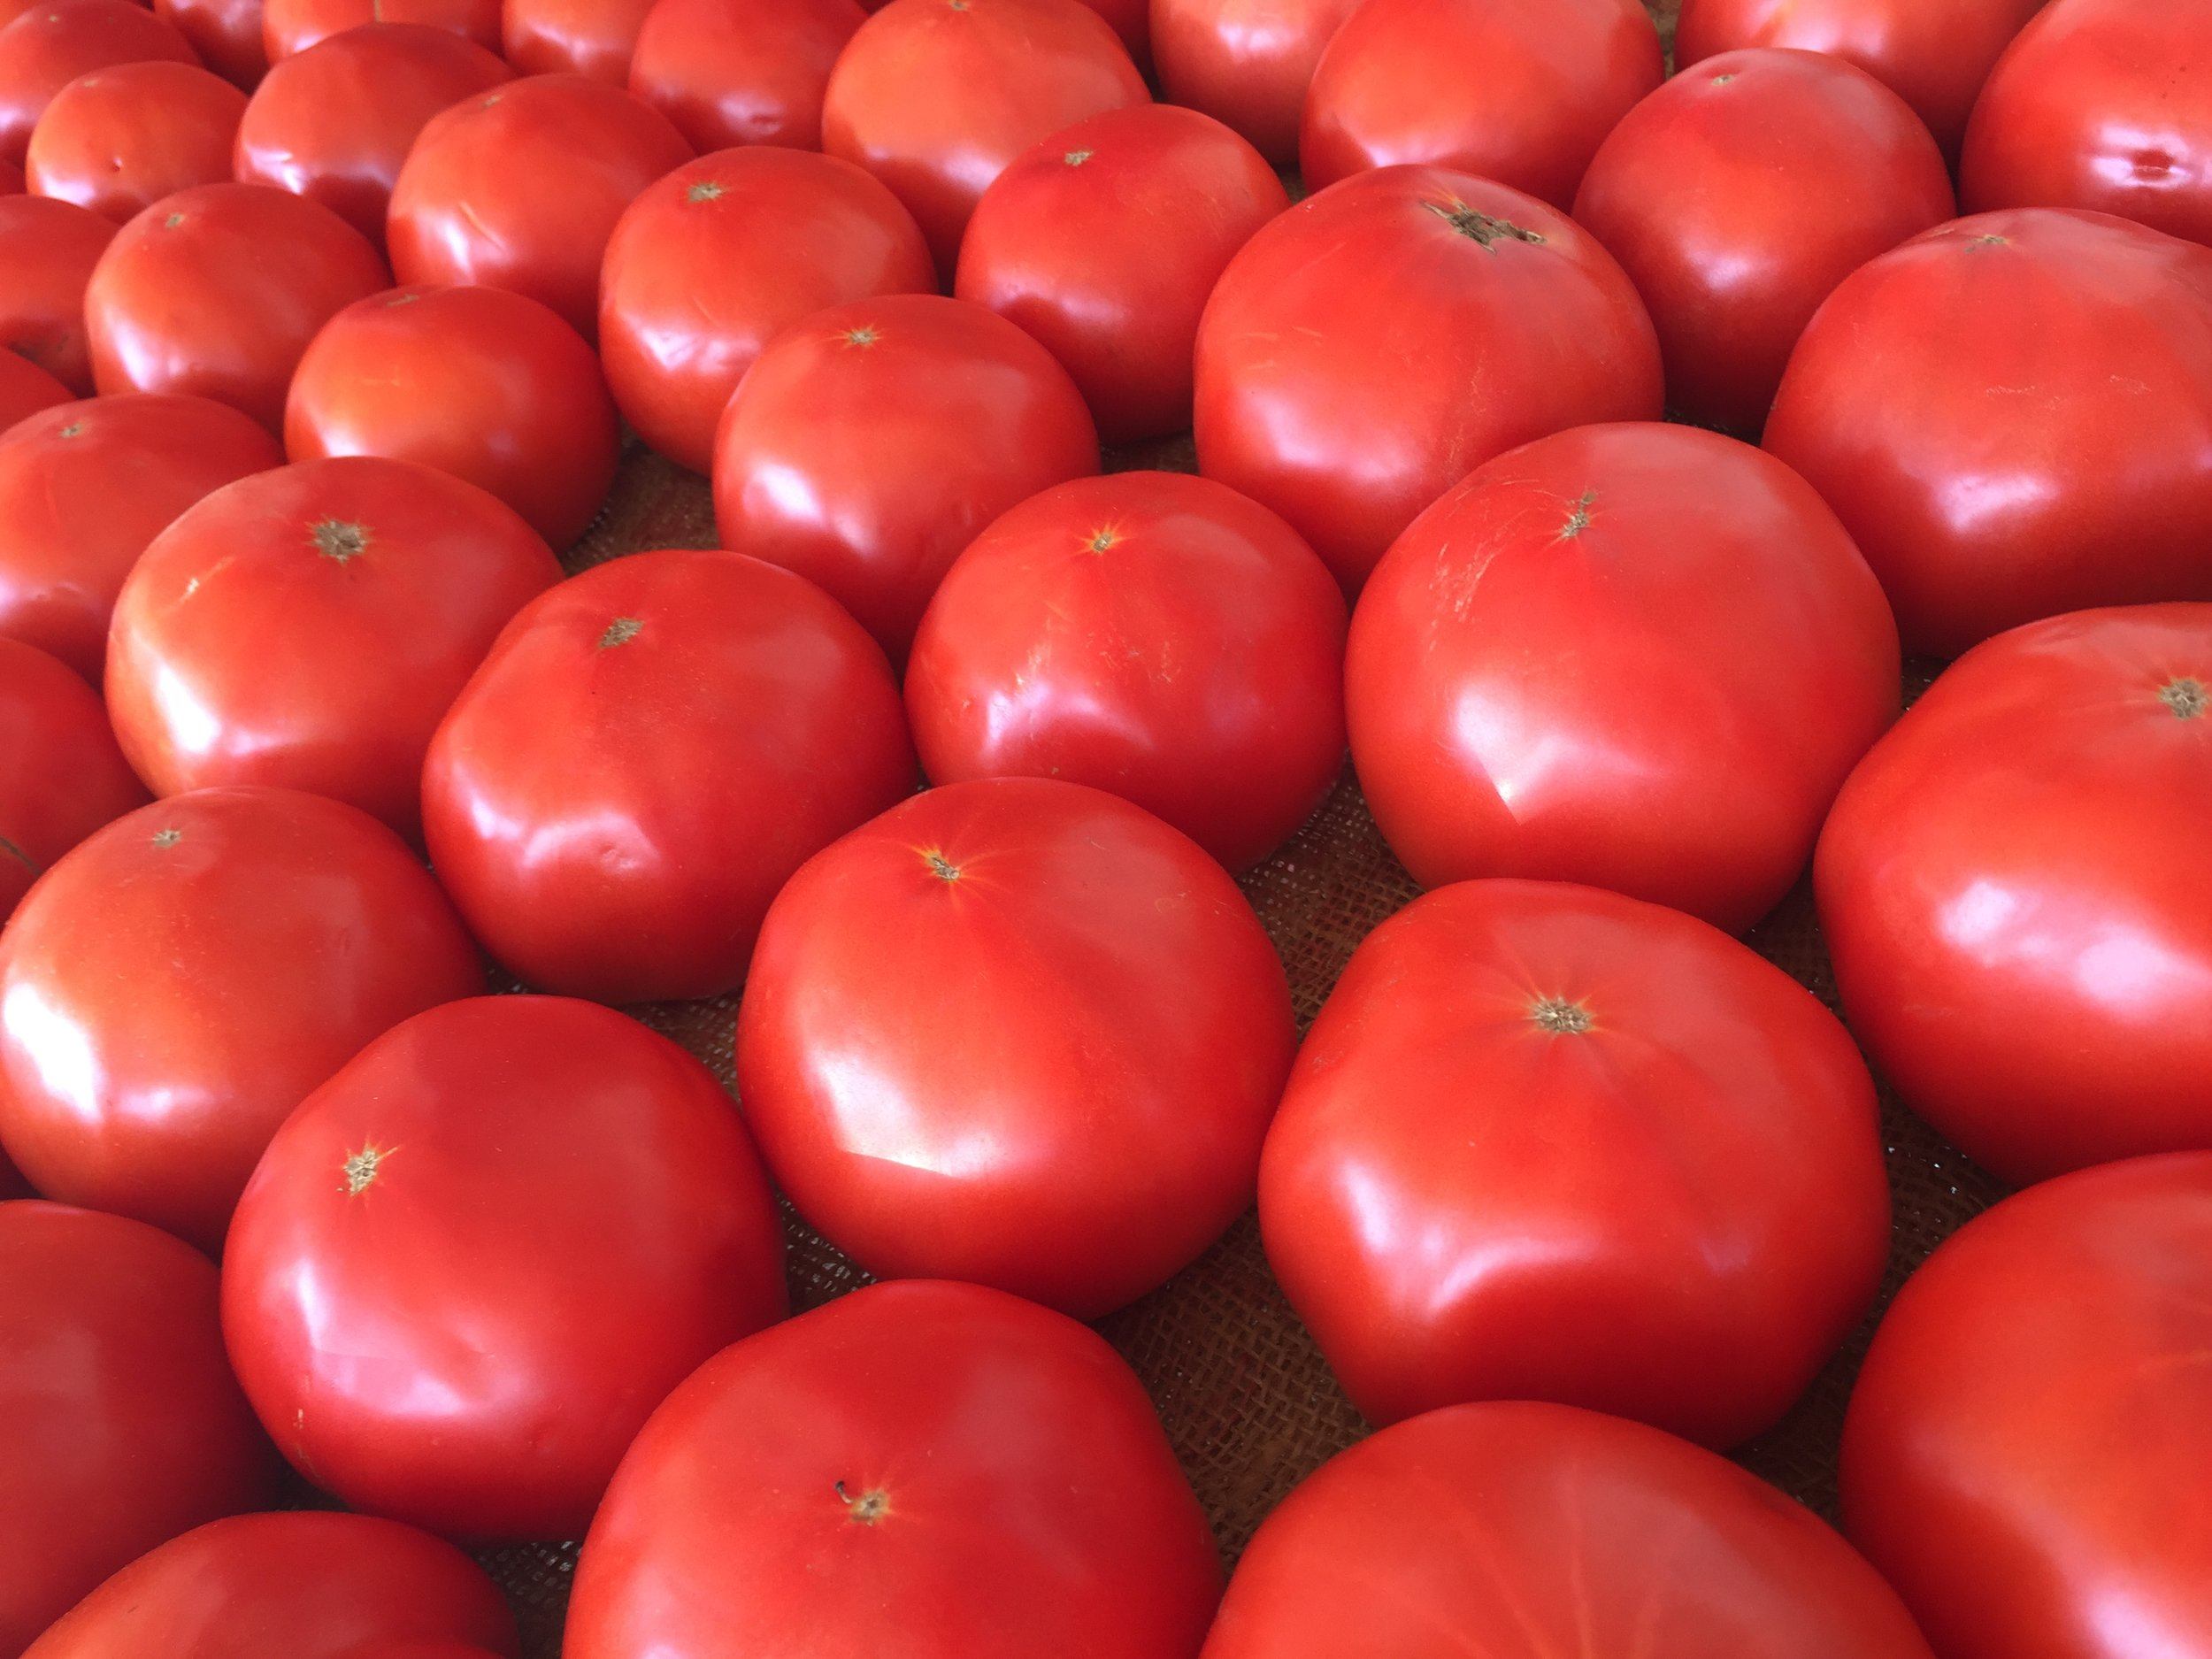 Gorgeous beefsteak tomatoes at a local farm